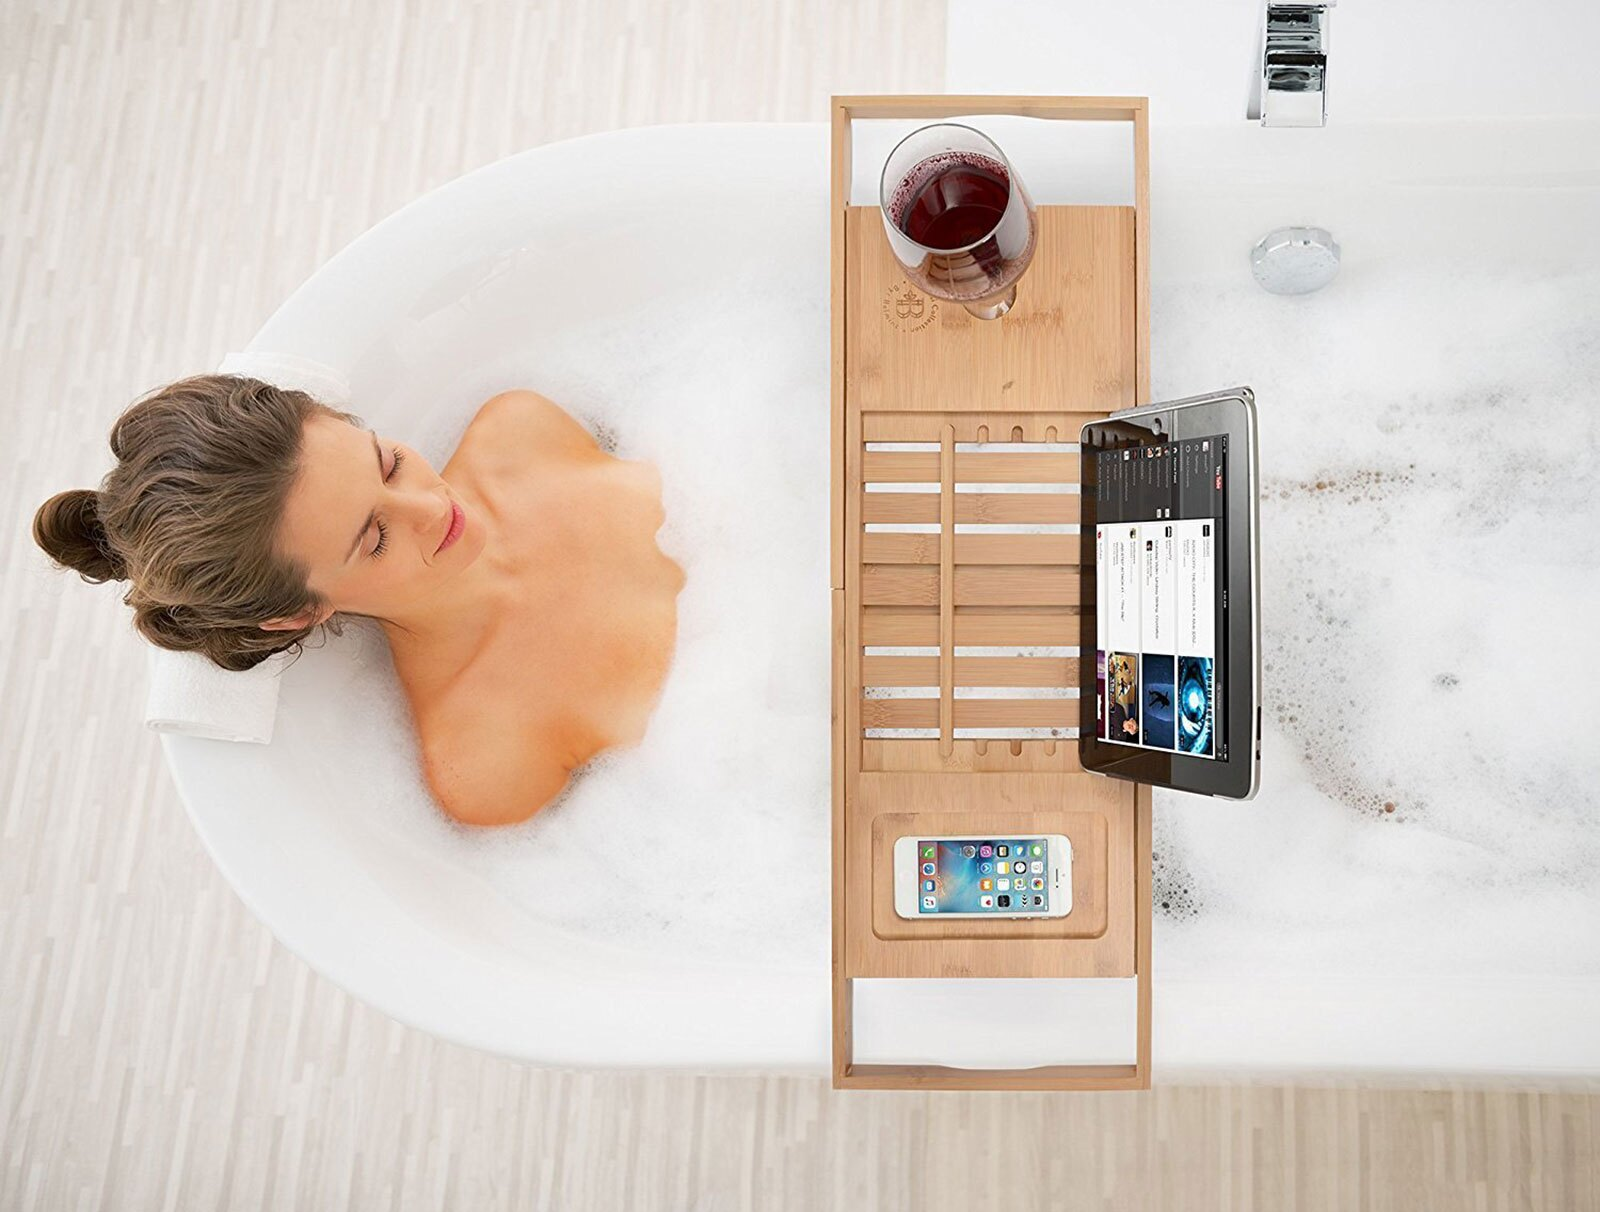 Belmint | Rakuten: Bambusi Bamboo Bathtub Caddy Tray w Extending ...